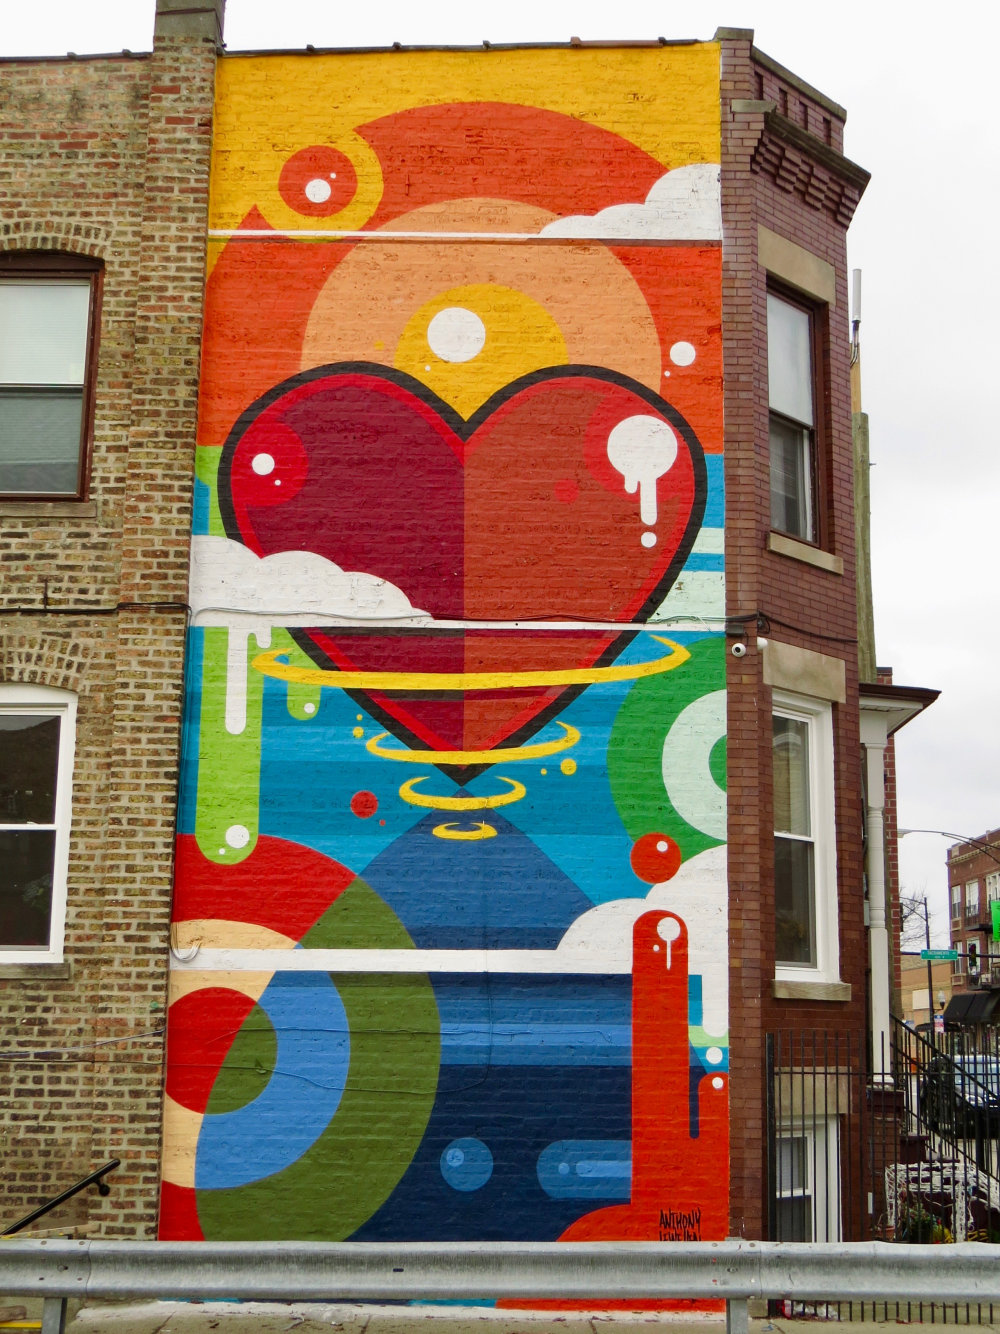 mural in Chicago by artist Anthony Lewellen